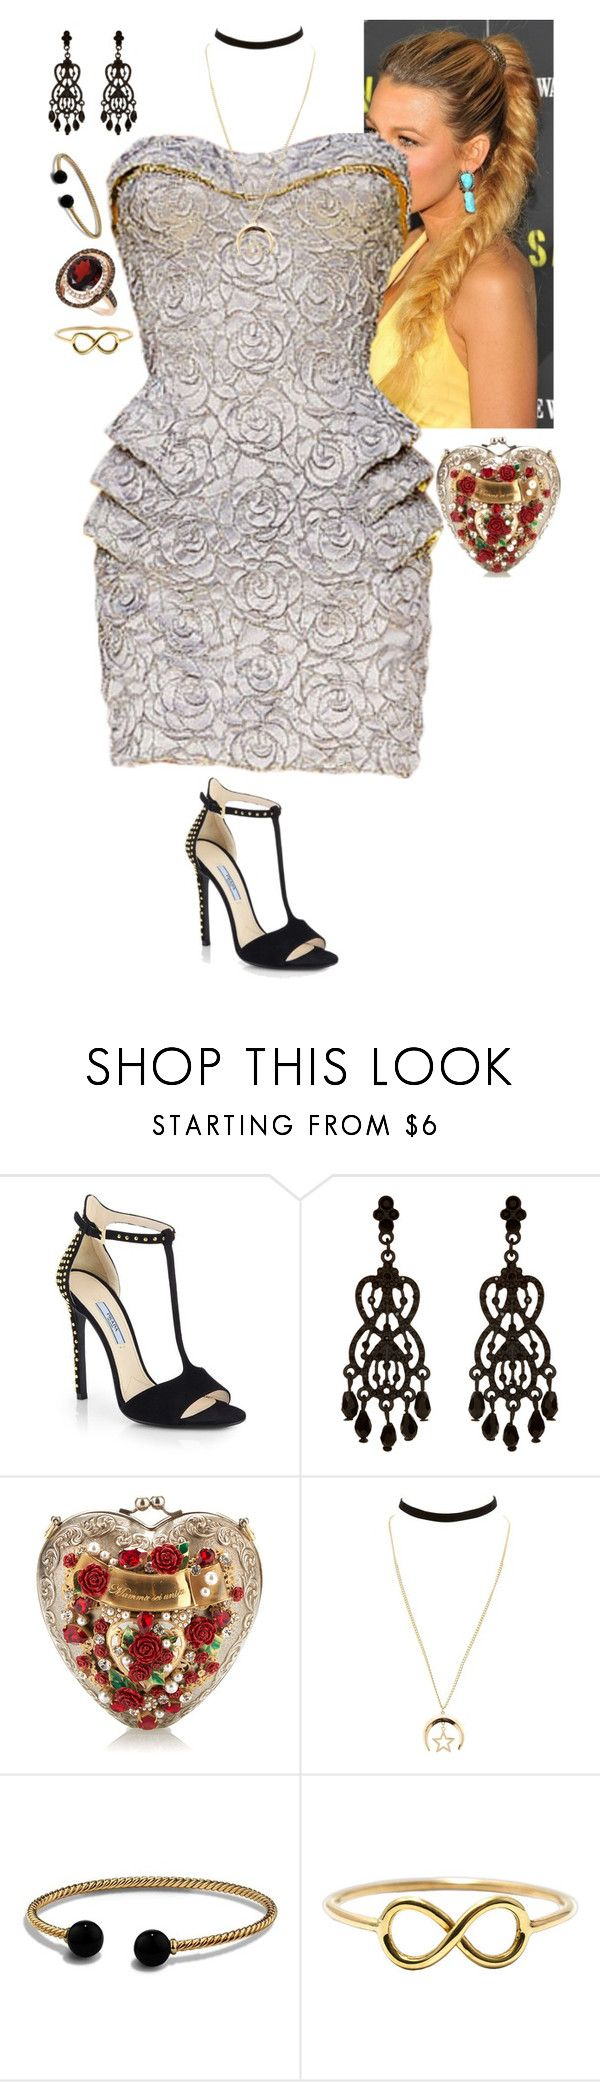 """Untitled #241"" by stinze on Polyvore featuring Prada, Accessorize, Dolce&Gabbana, Charlotte Russe, David Yurman and LE VIAN"